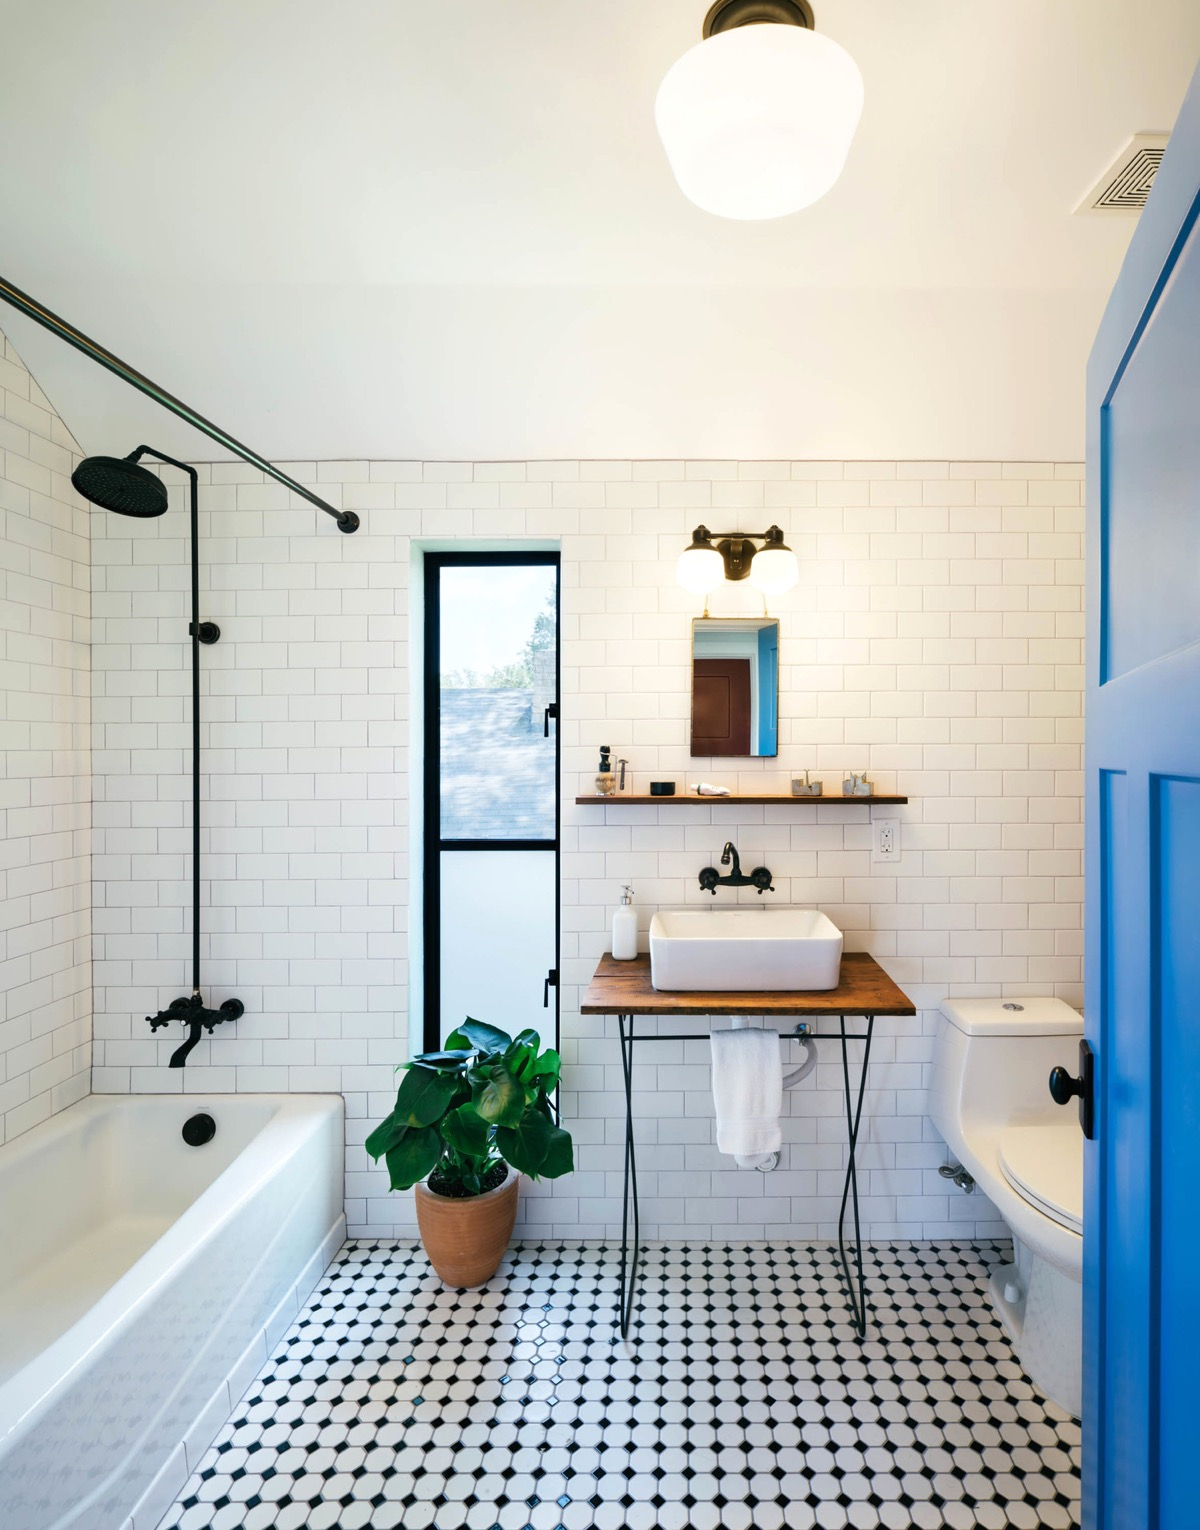 51 Industrial Style Bathrooms Plus Ideas & Accessories You Can Copy From Them images 26